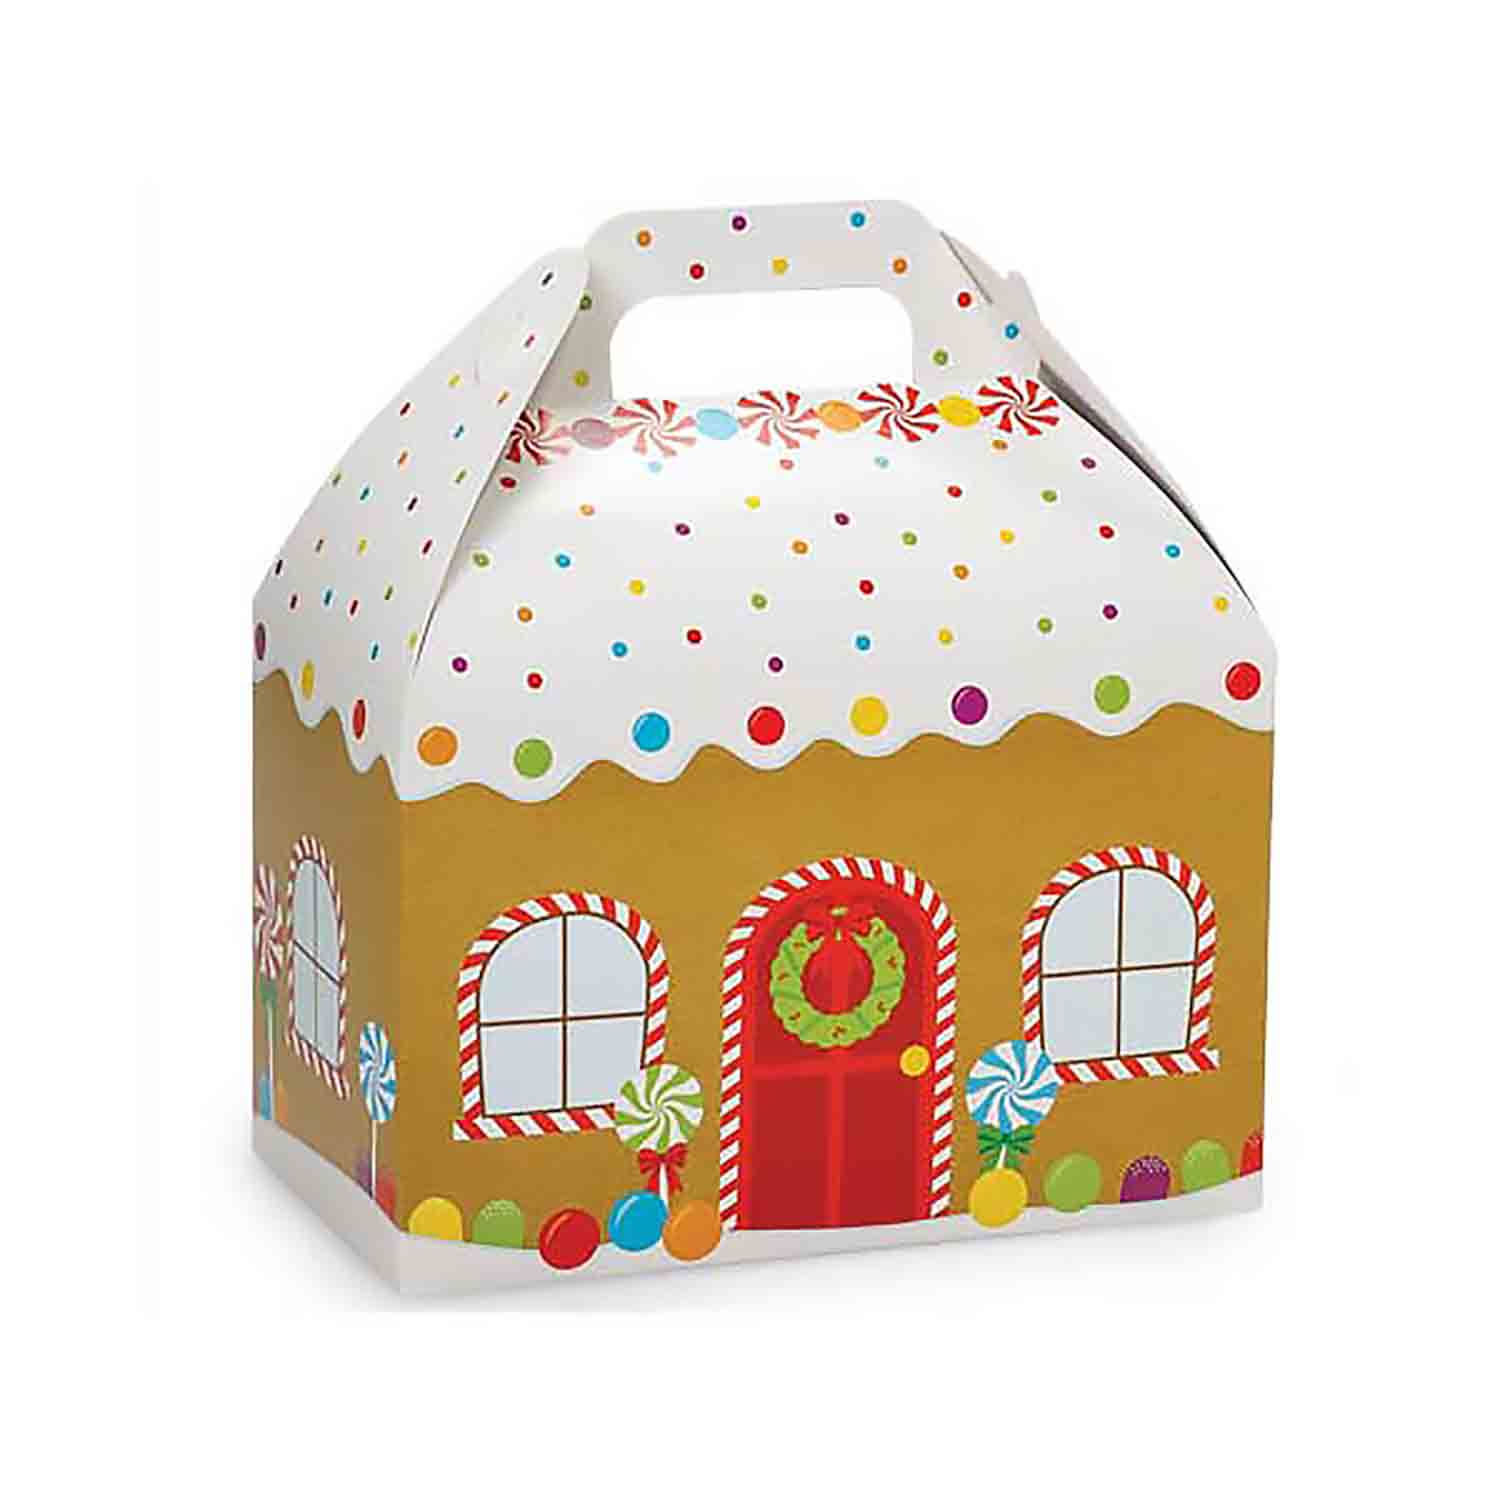 4 lb Gingerbread House Gable Box